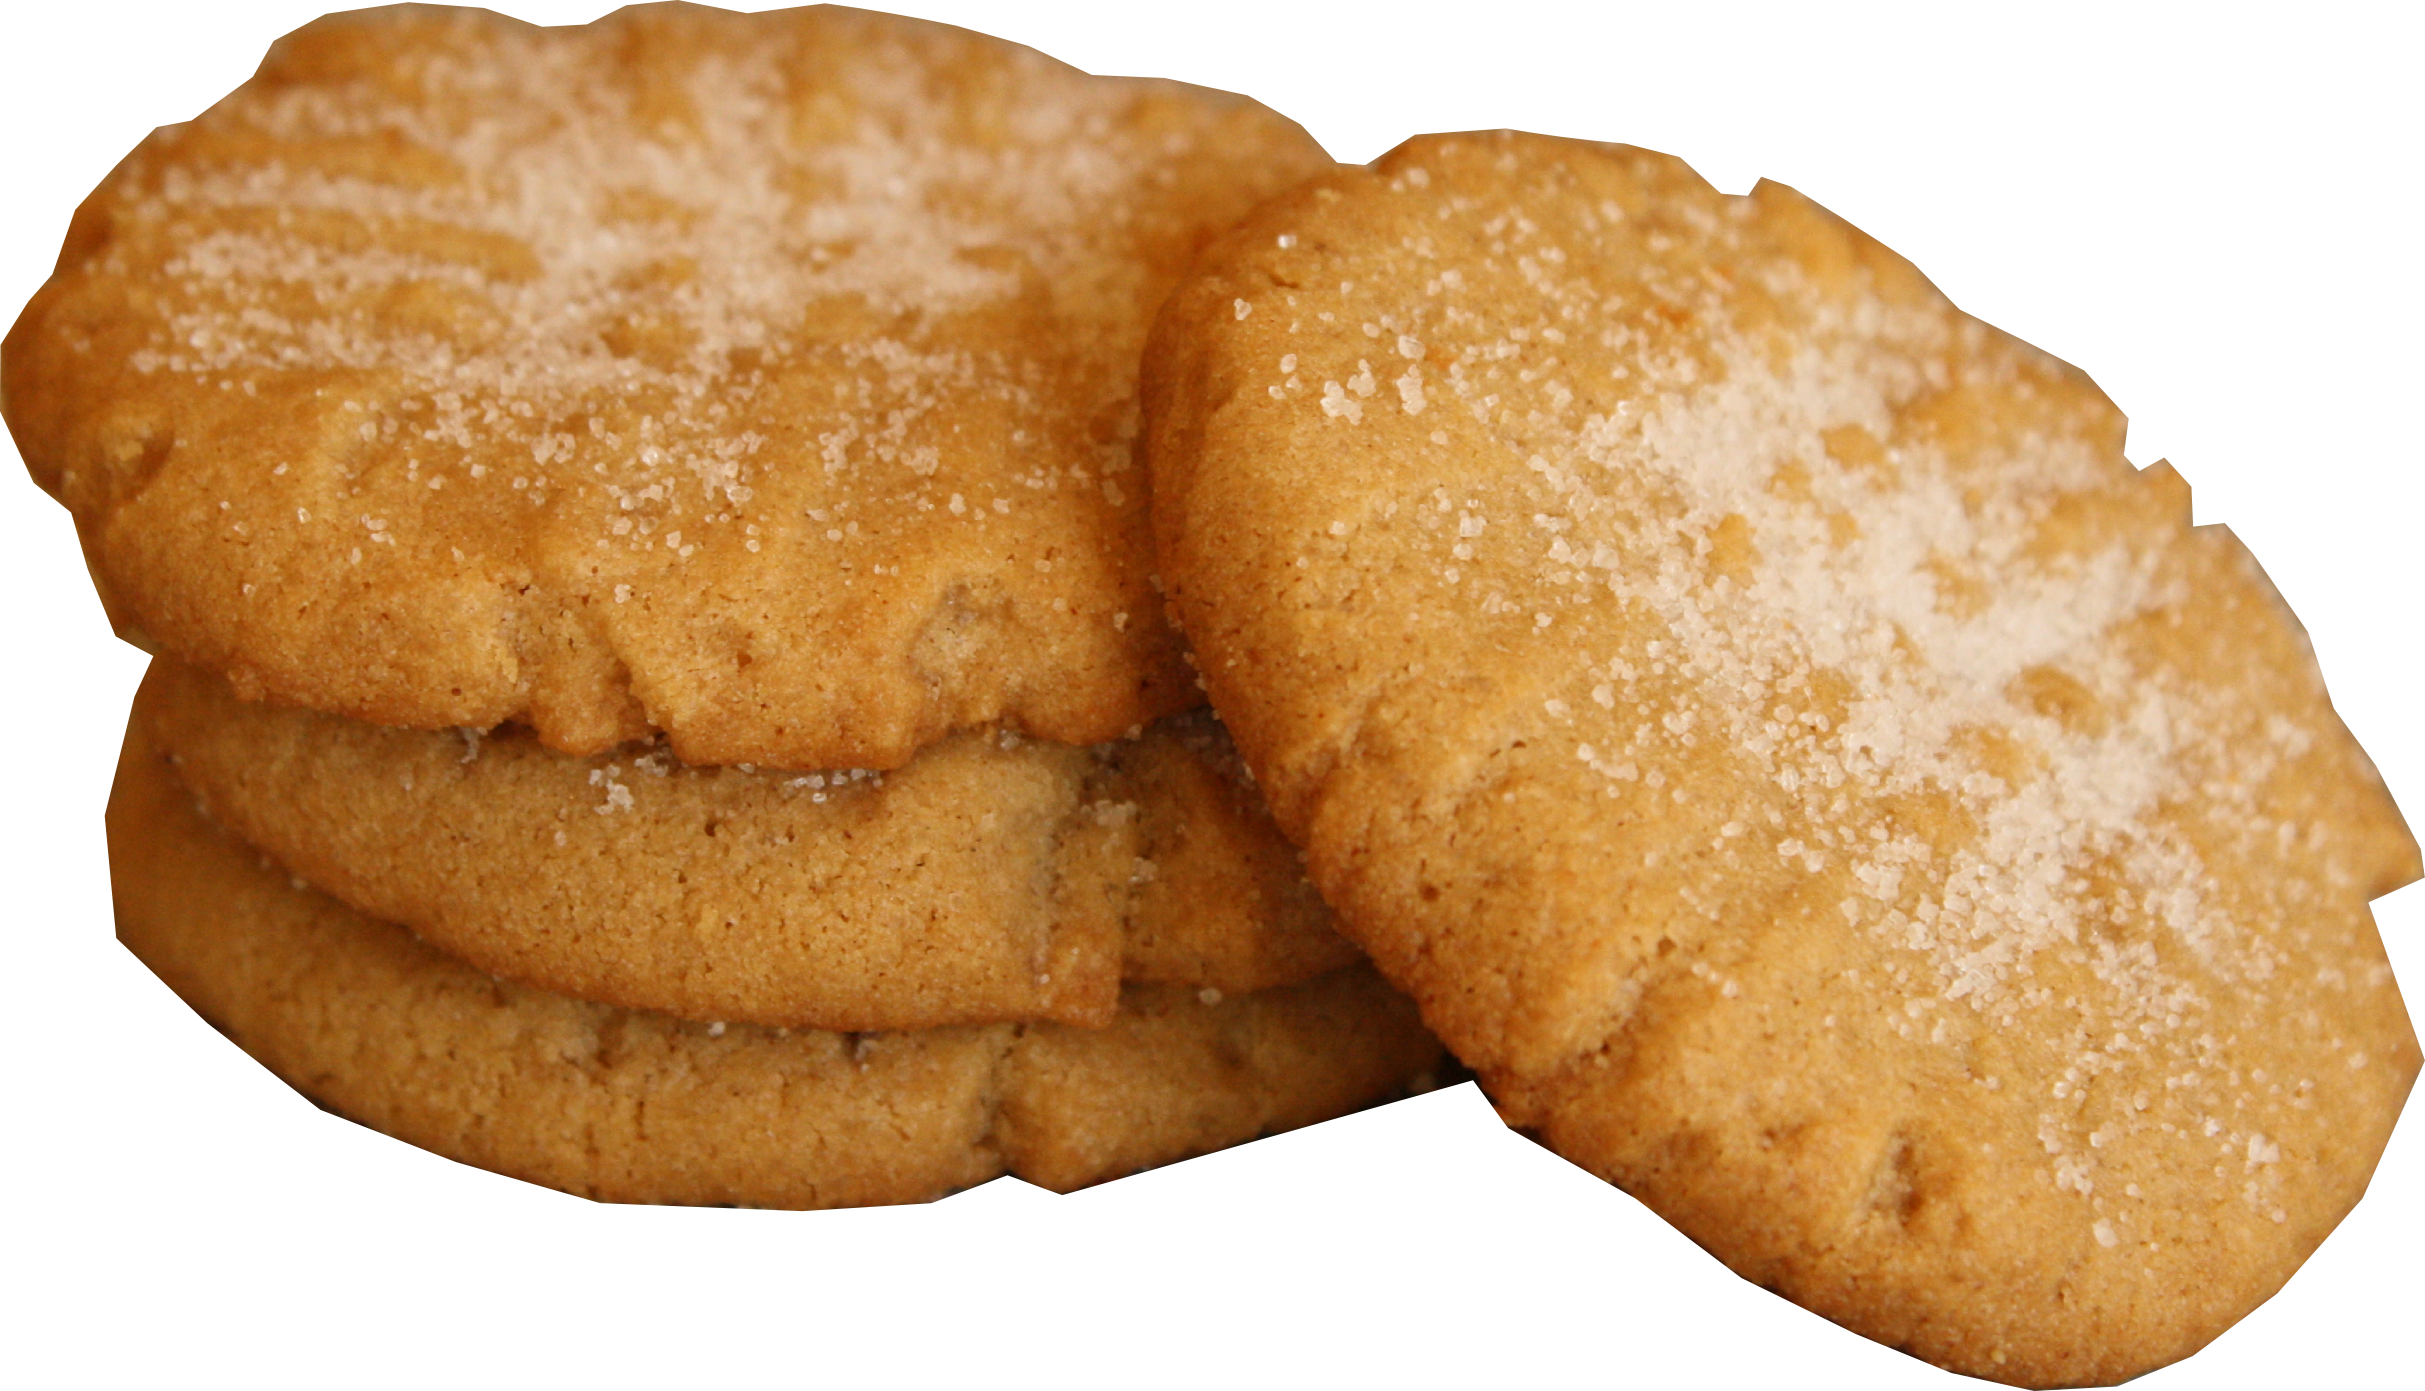 Sugared Cookie Images Photo